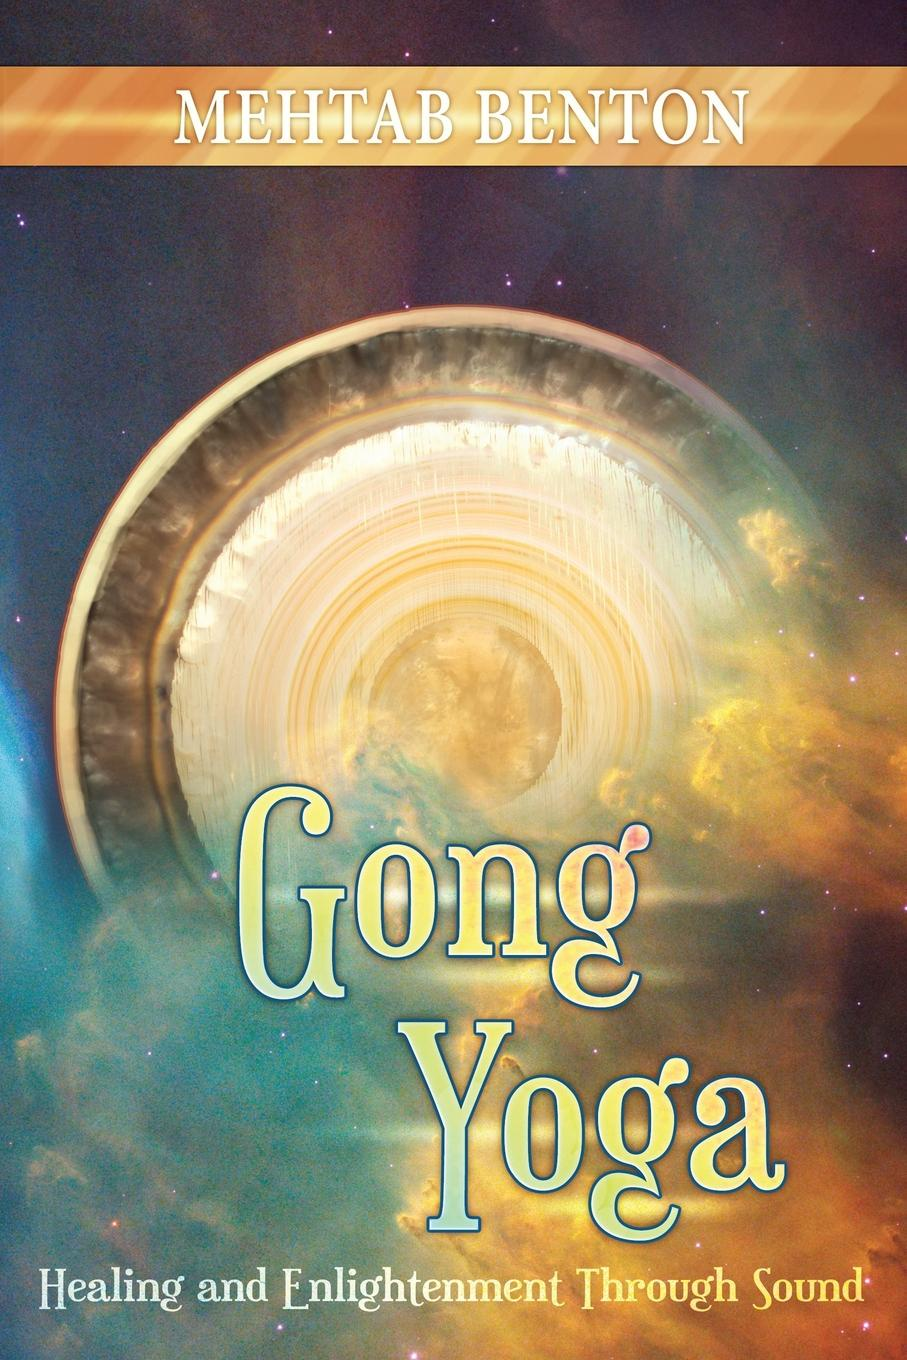 Mehtab Benton Gong Yoga nabin amatya paul c knox and gong qiyong saccade eye movement